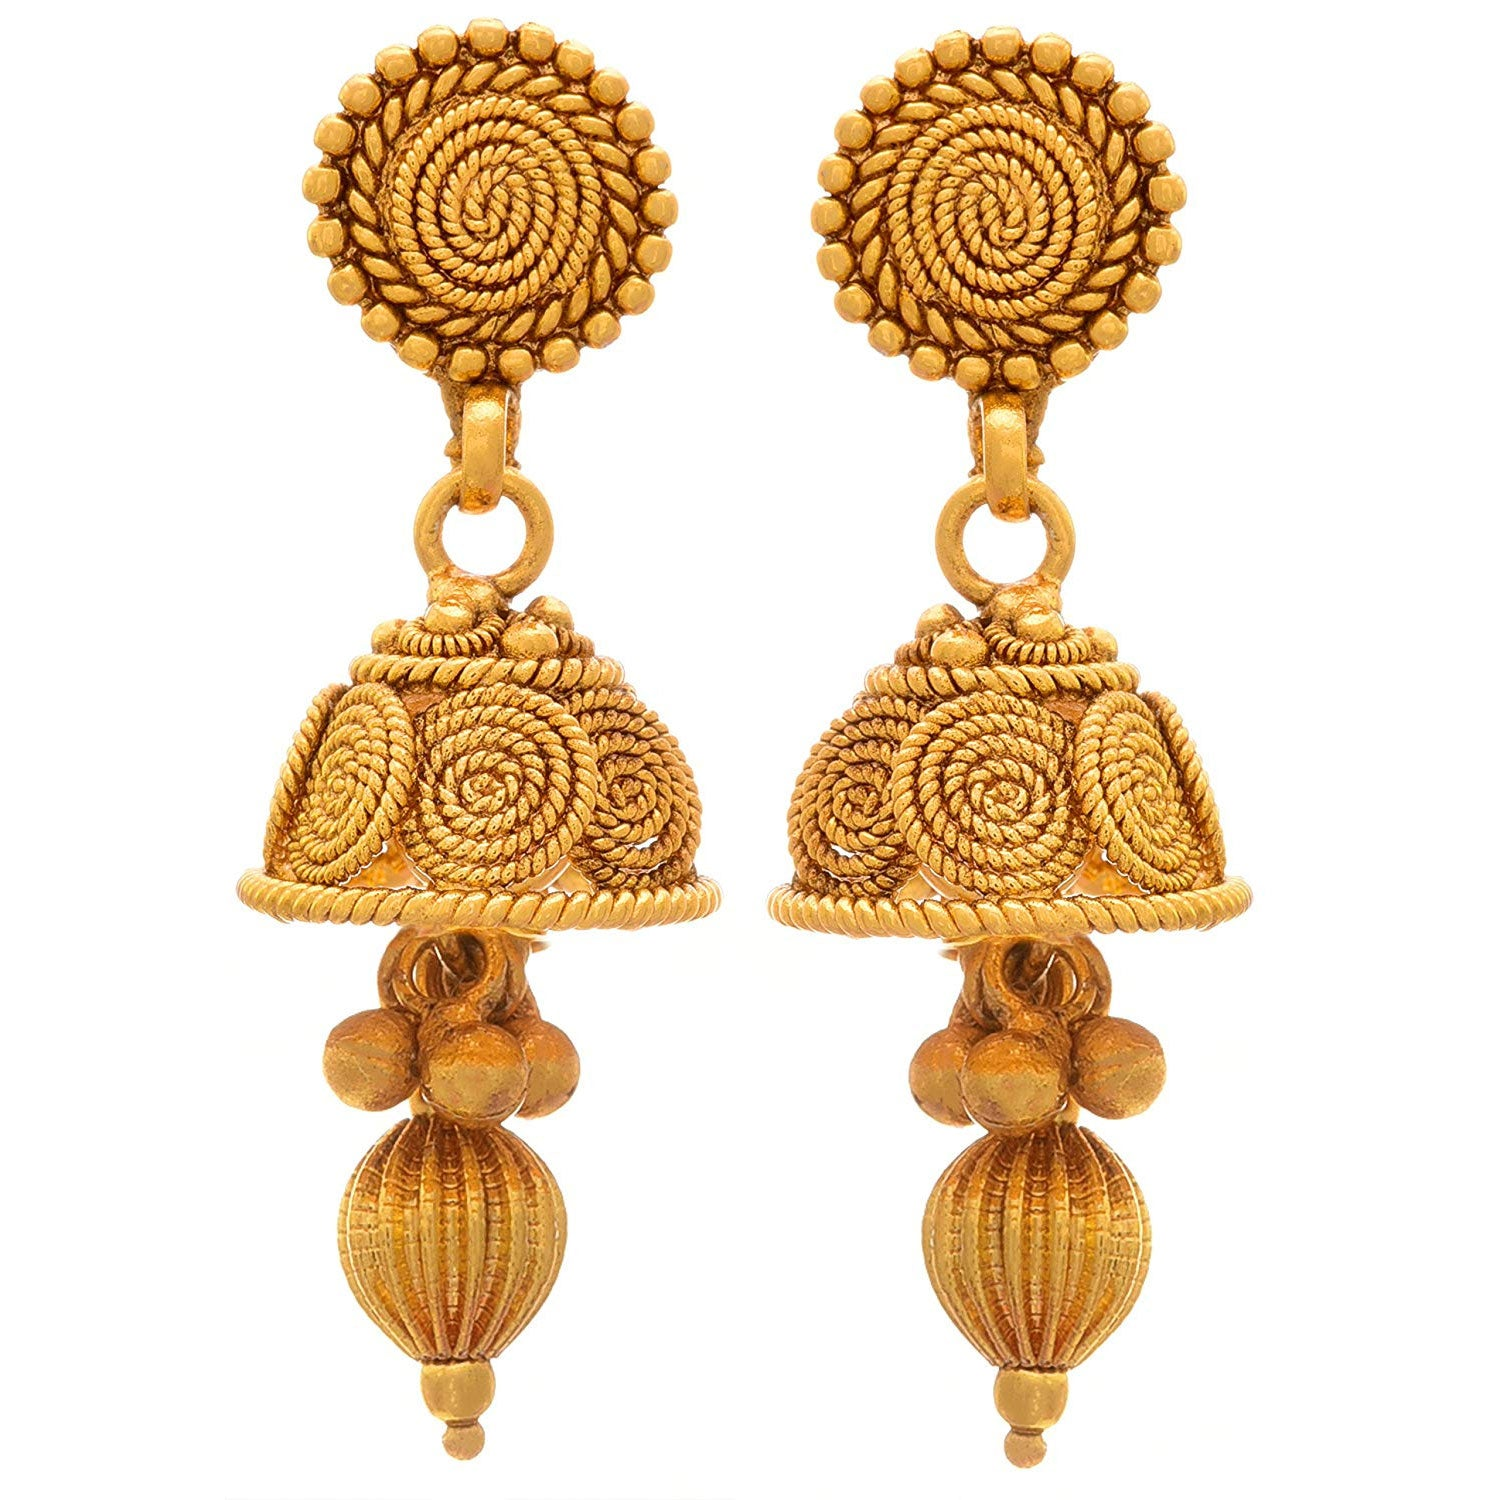 JFL - Traditional Ethnic One Gram Gold Plated Spiral Mangalsutra Jewellery Set With Earring For Women